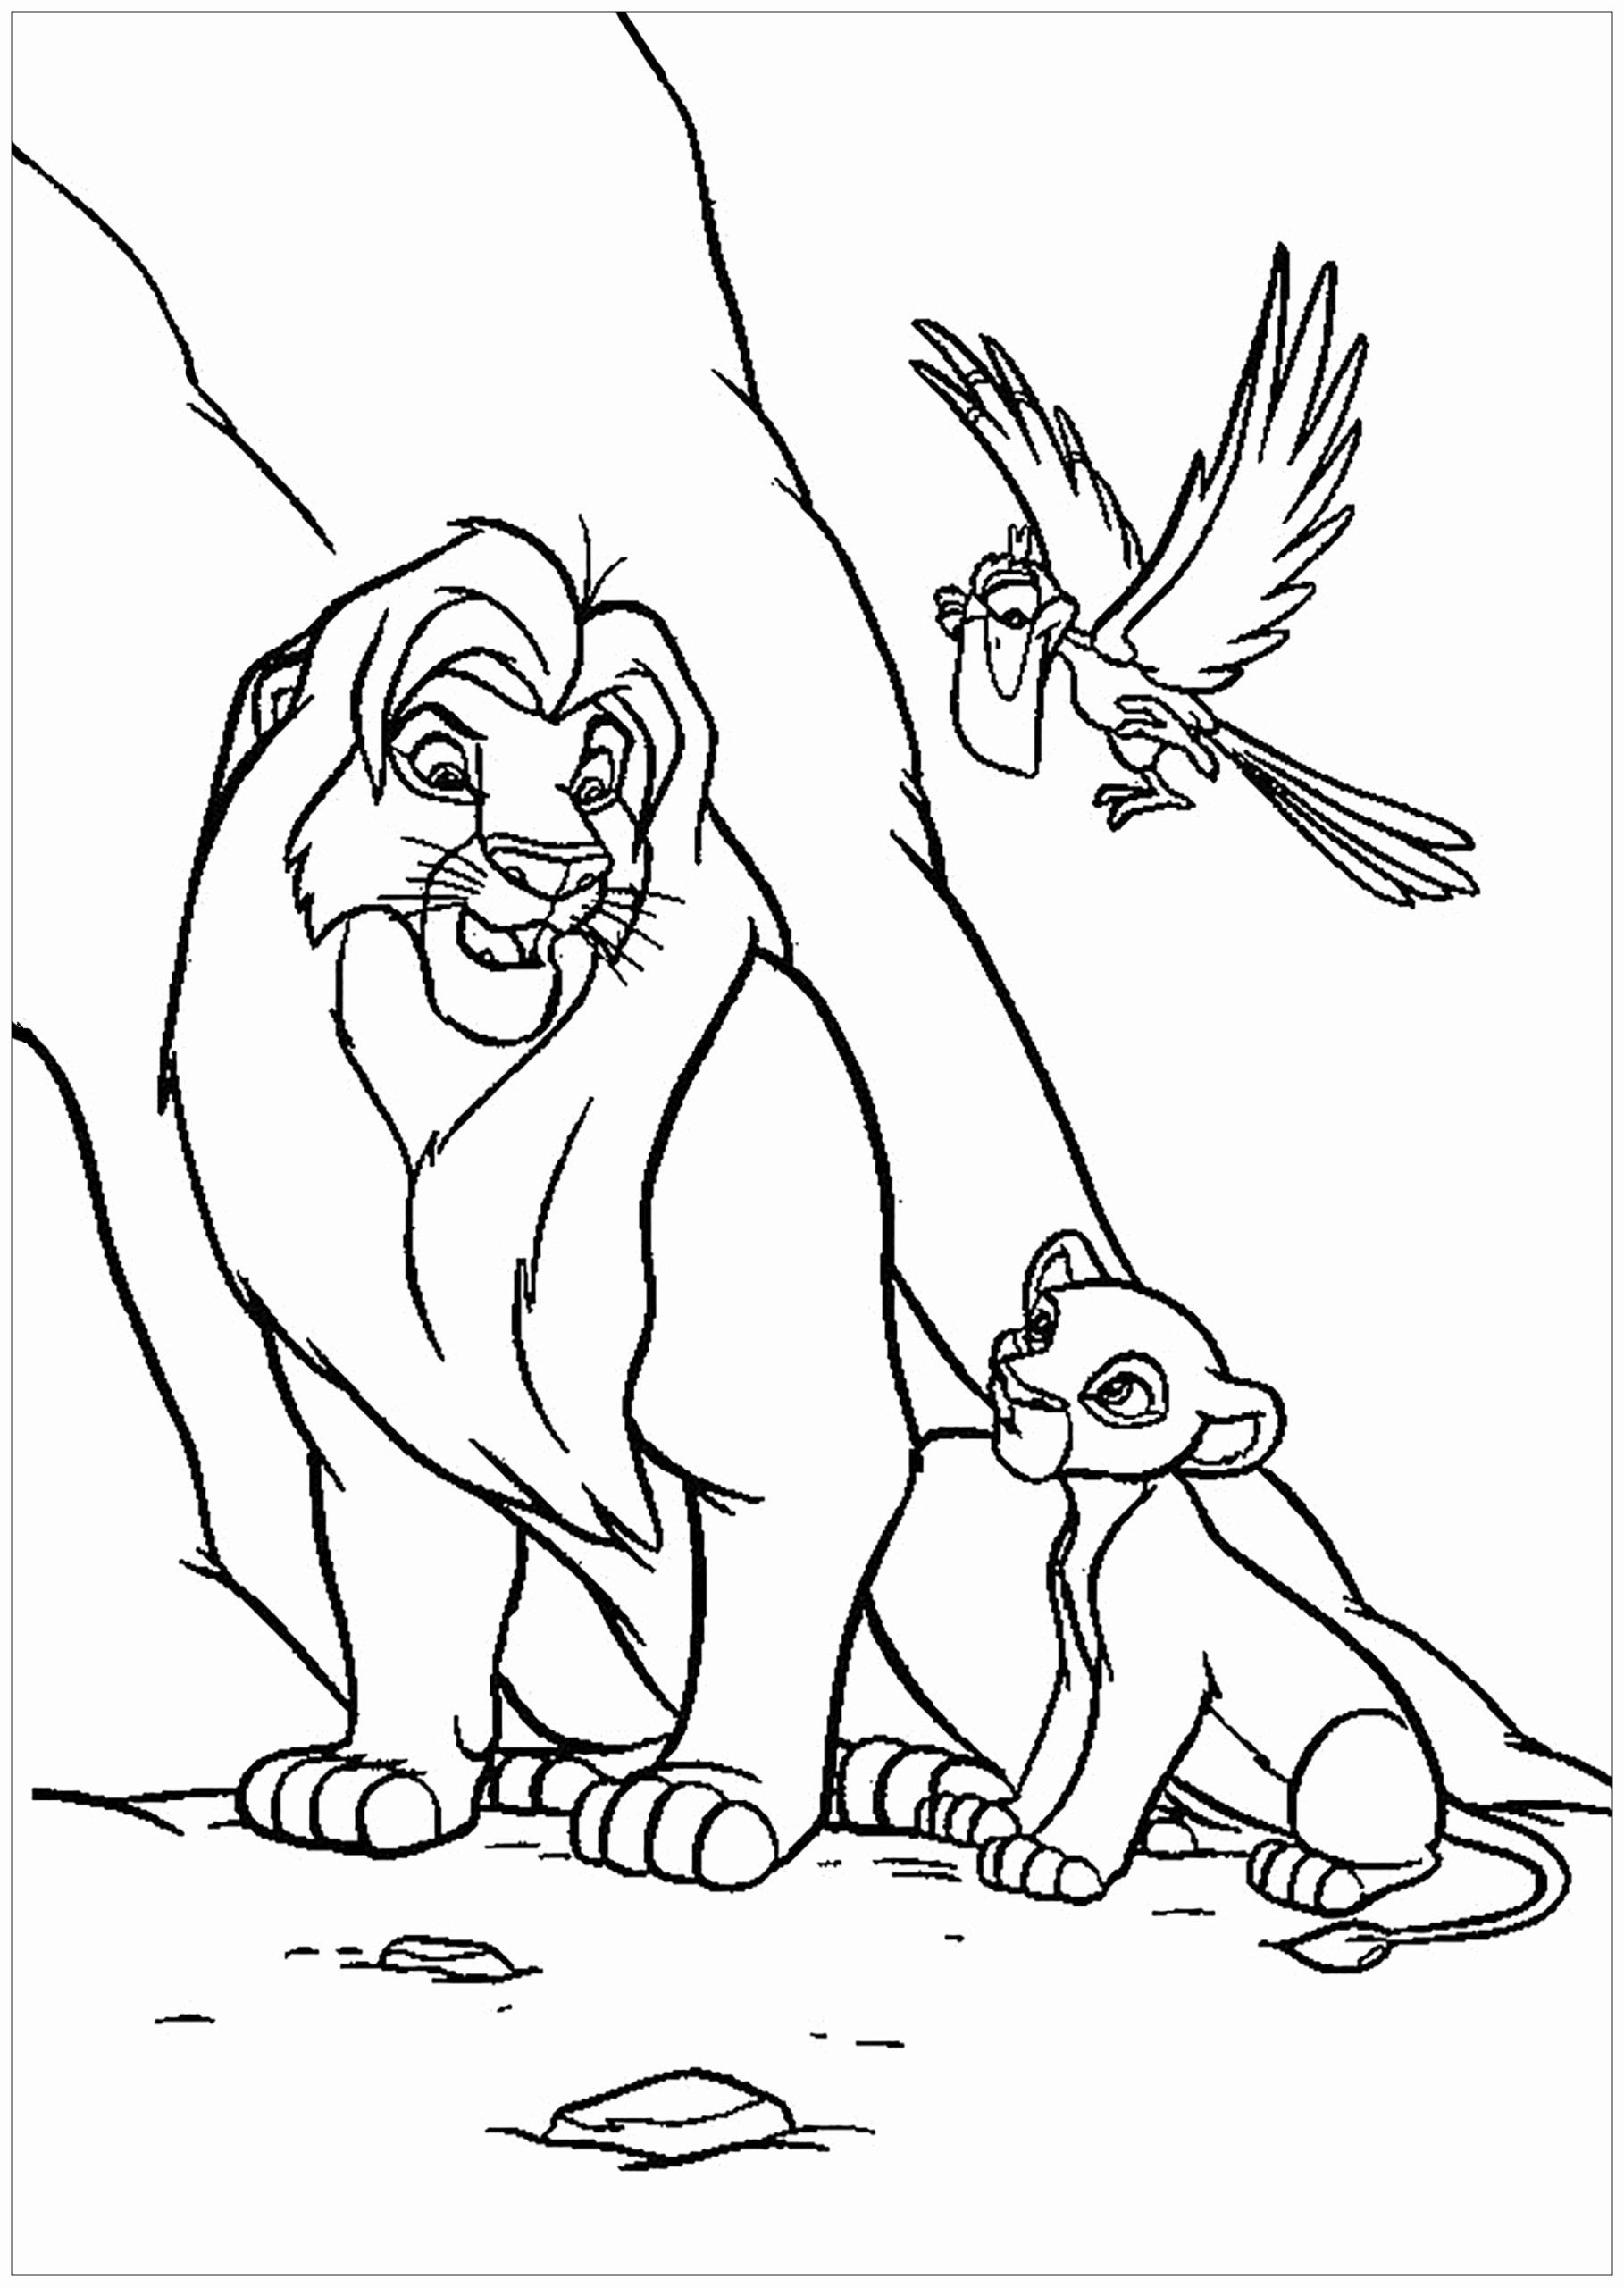 Lion King Coloring Book Inspirational Coloring Pages Coloring Pages Excelent Lion Guard King Coloring Book Animal Coloring Pages Lion Coloring Pages